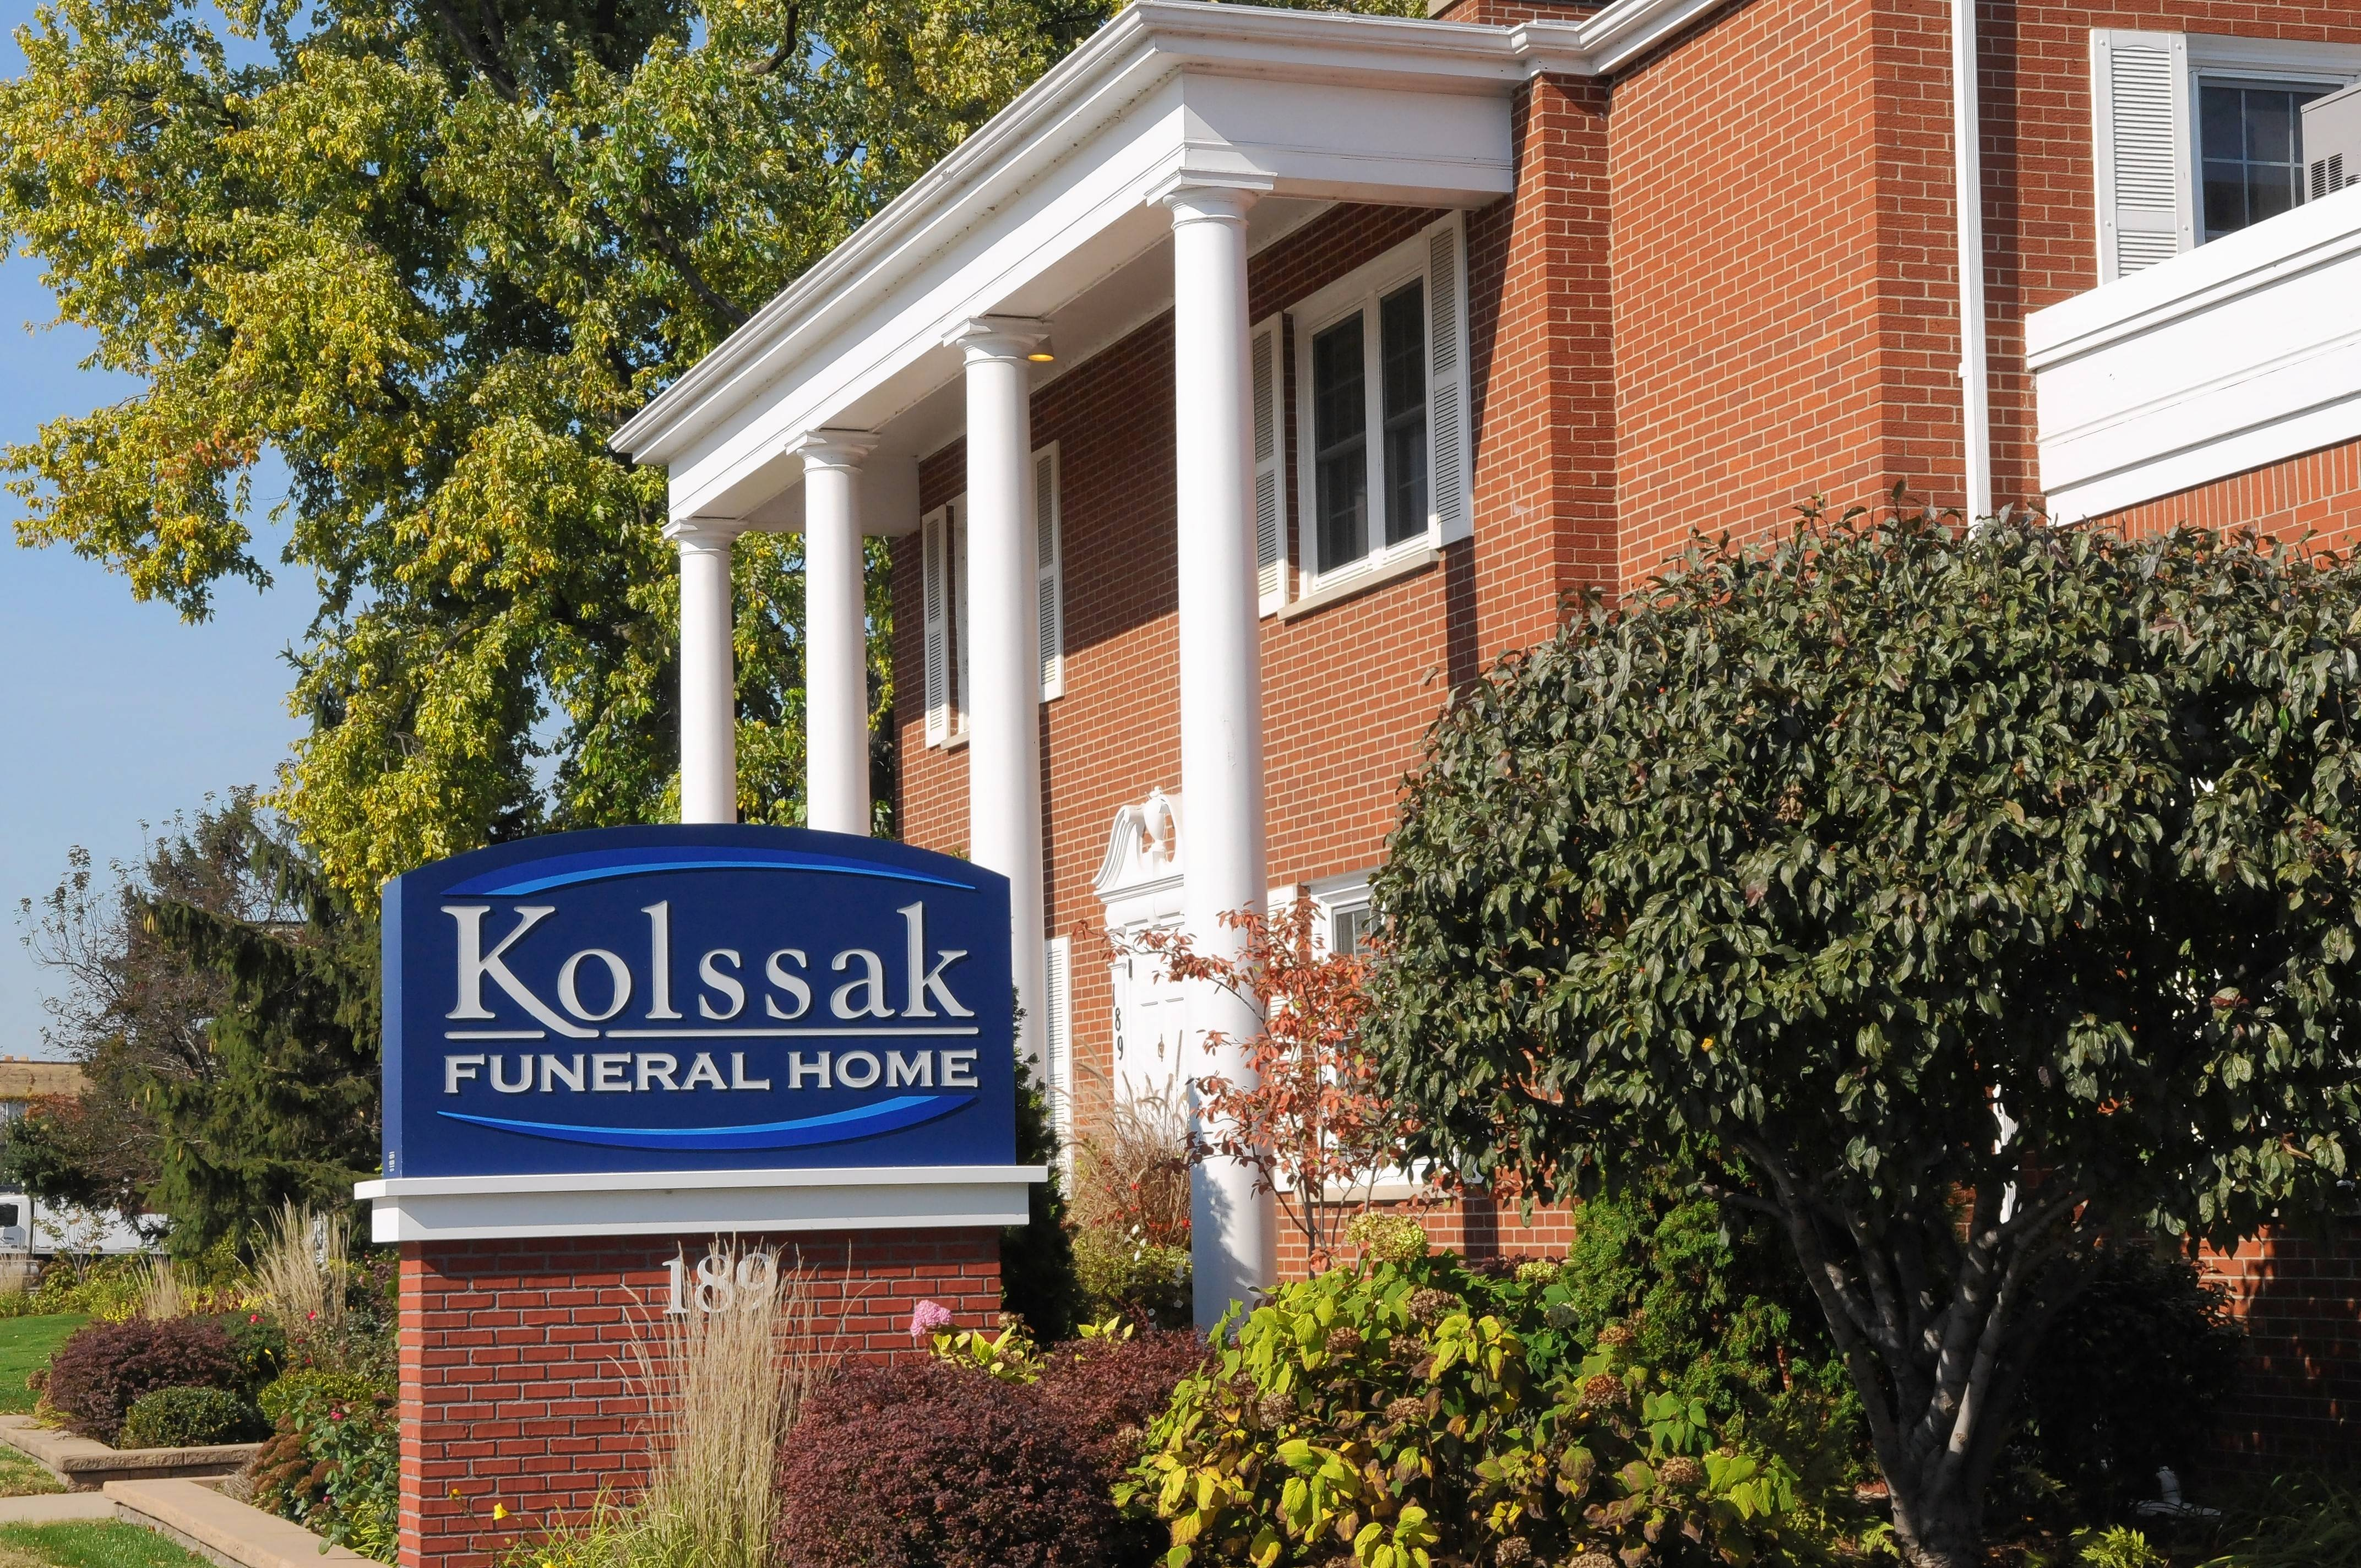 Wheeling trustees last week renewed a liquor license for Kolssak Funeral Home, allowing it to continue serving alcohol at end-of-life celebrations.